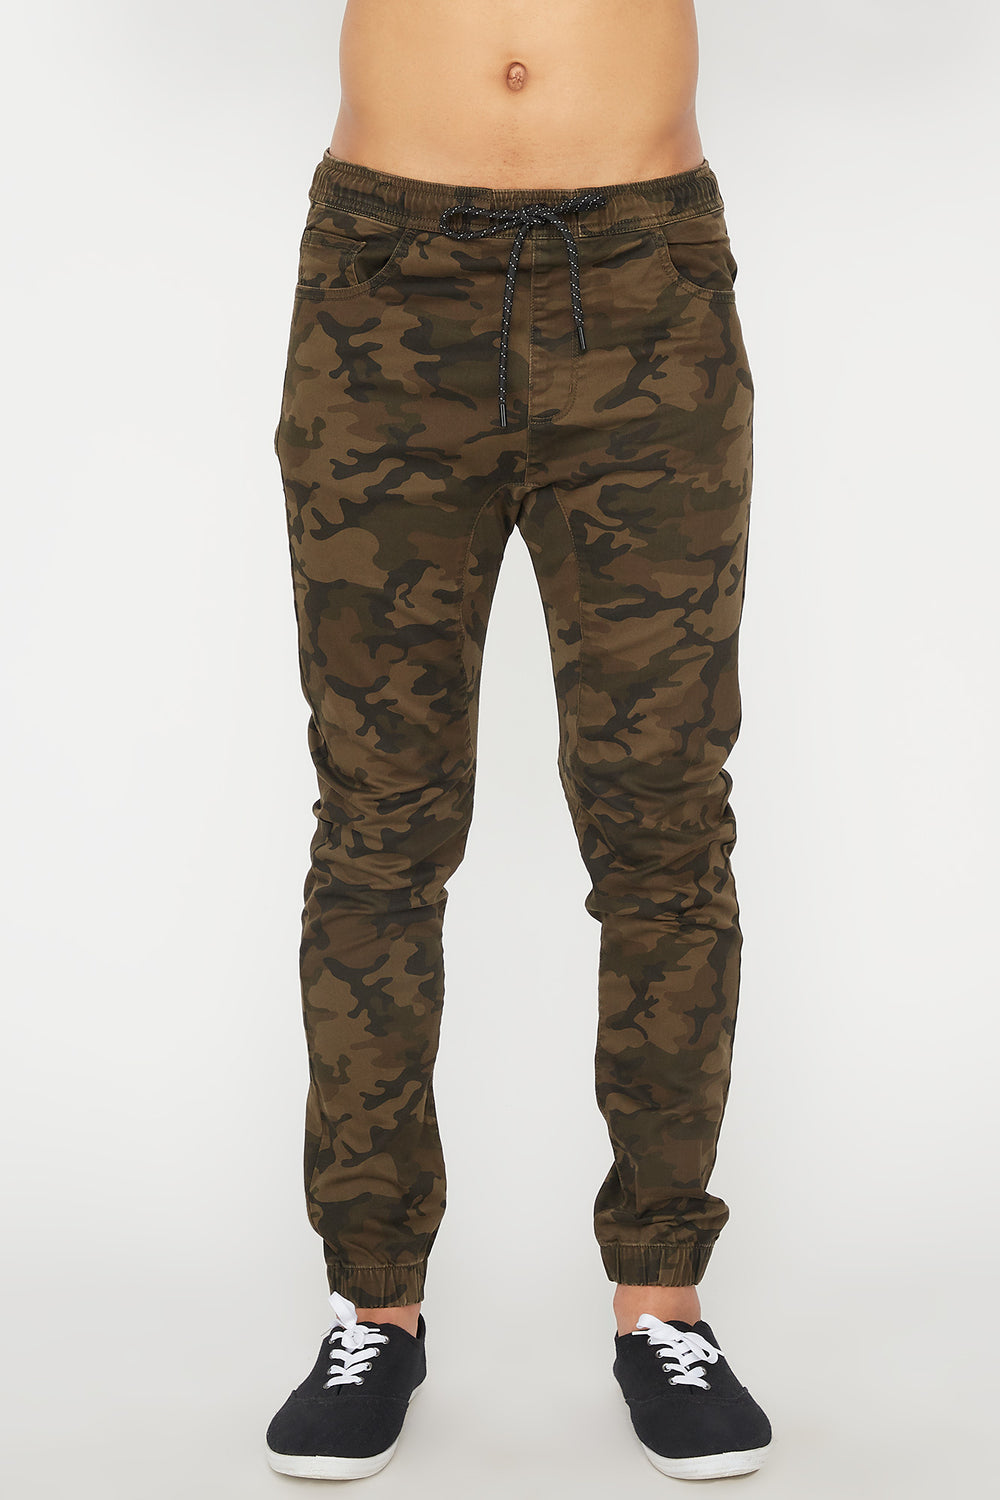 Zoo York Mens 5 Pocket Camo Jogger Camouflage